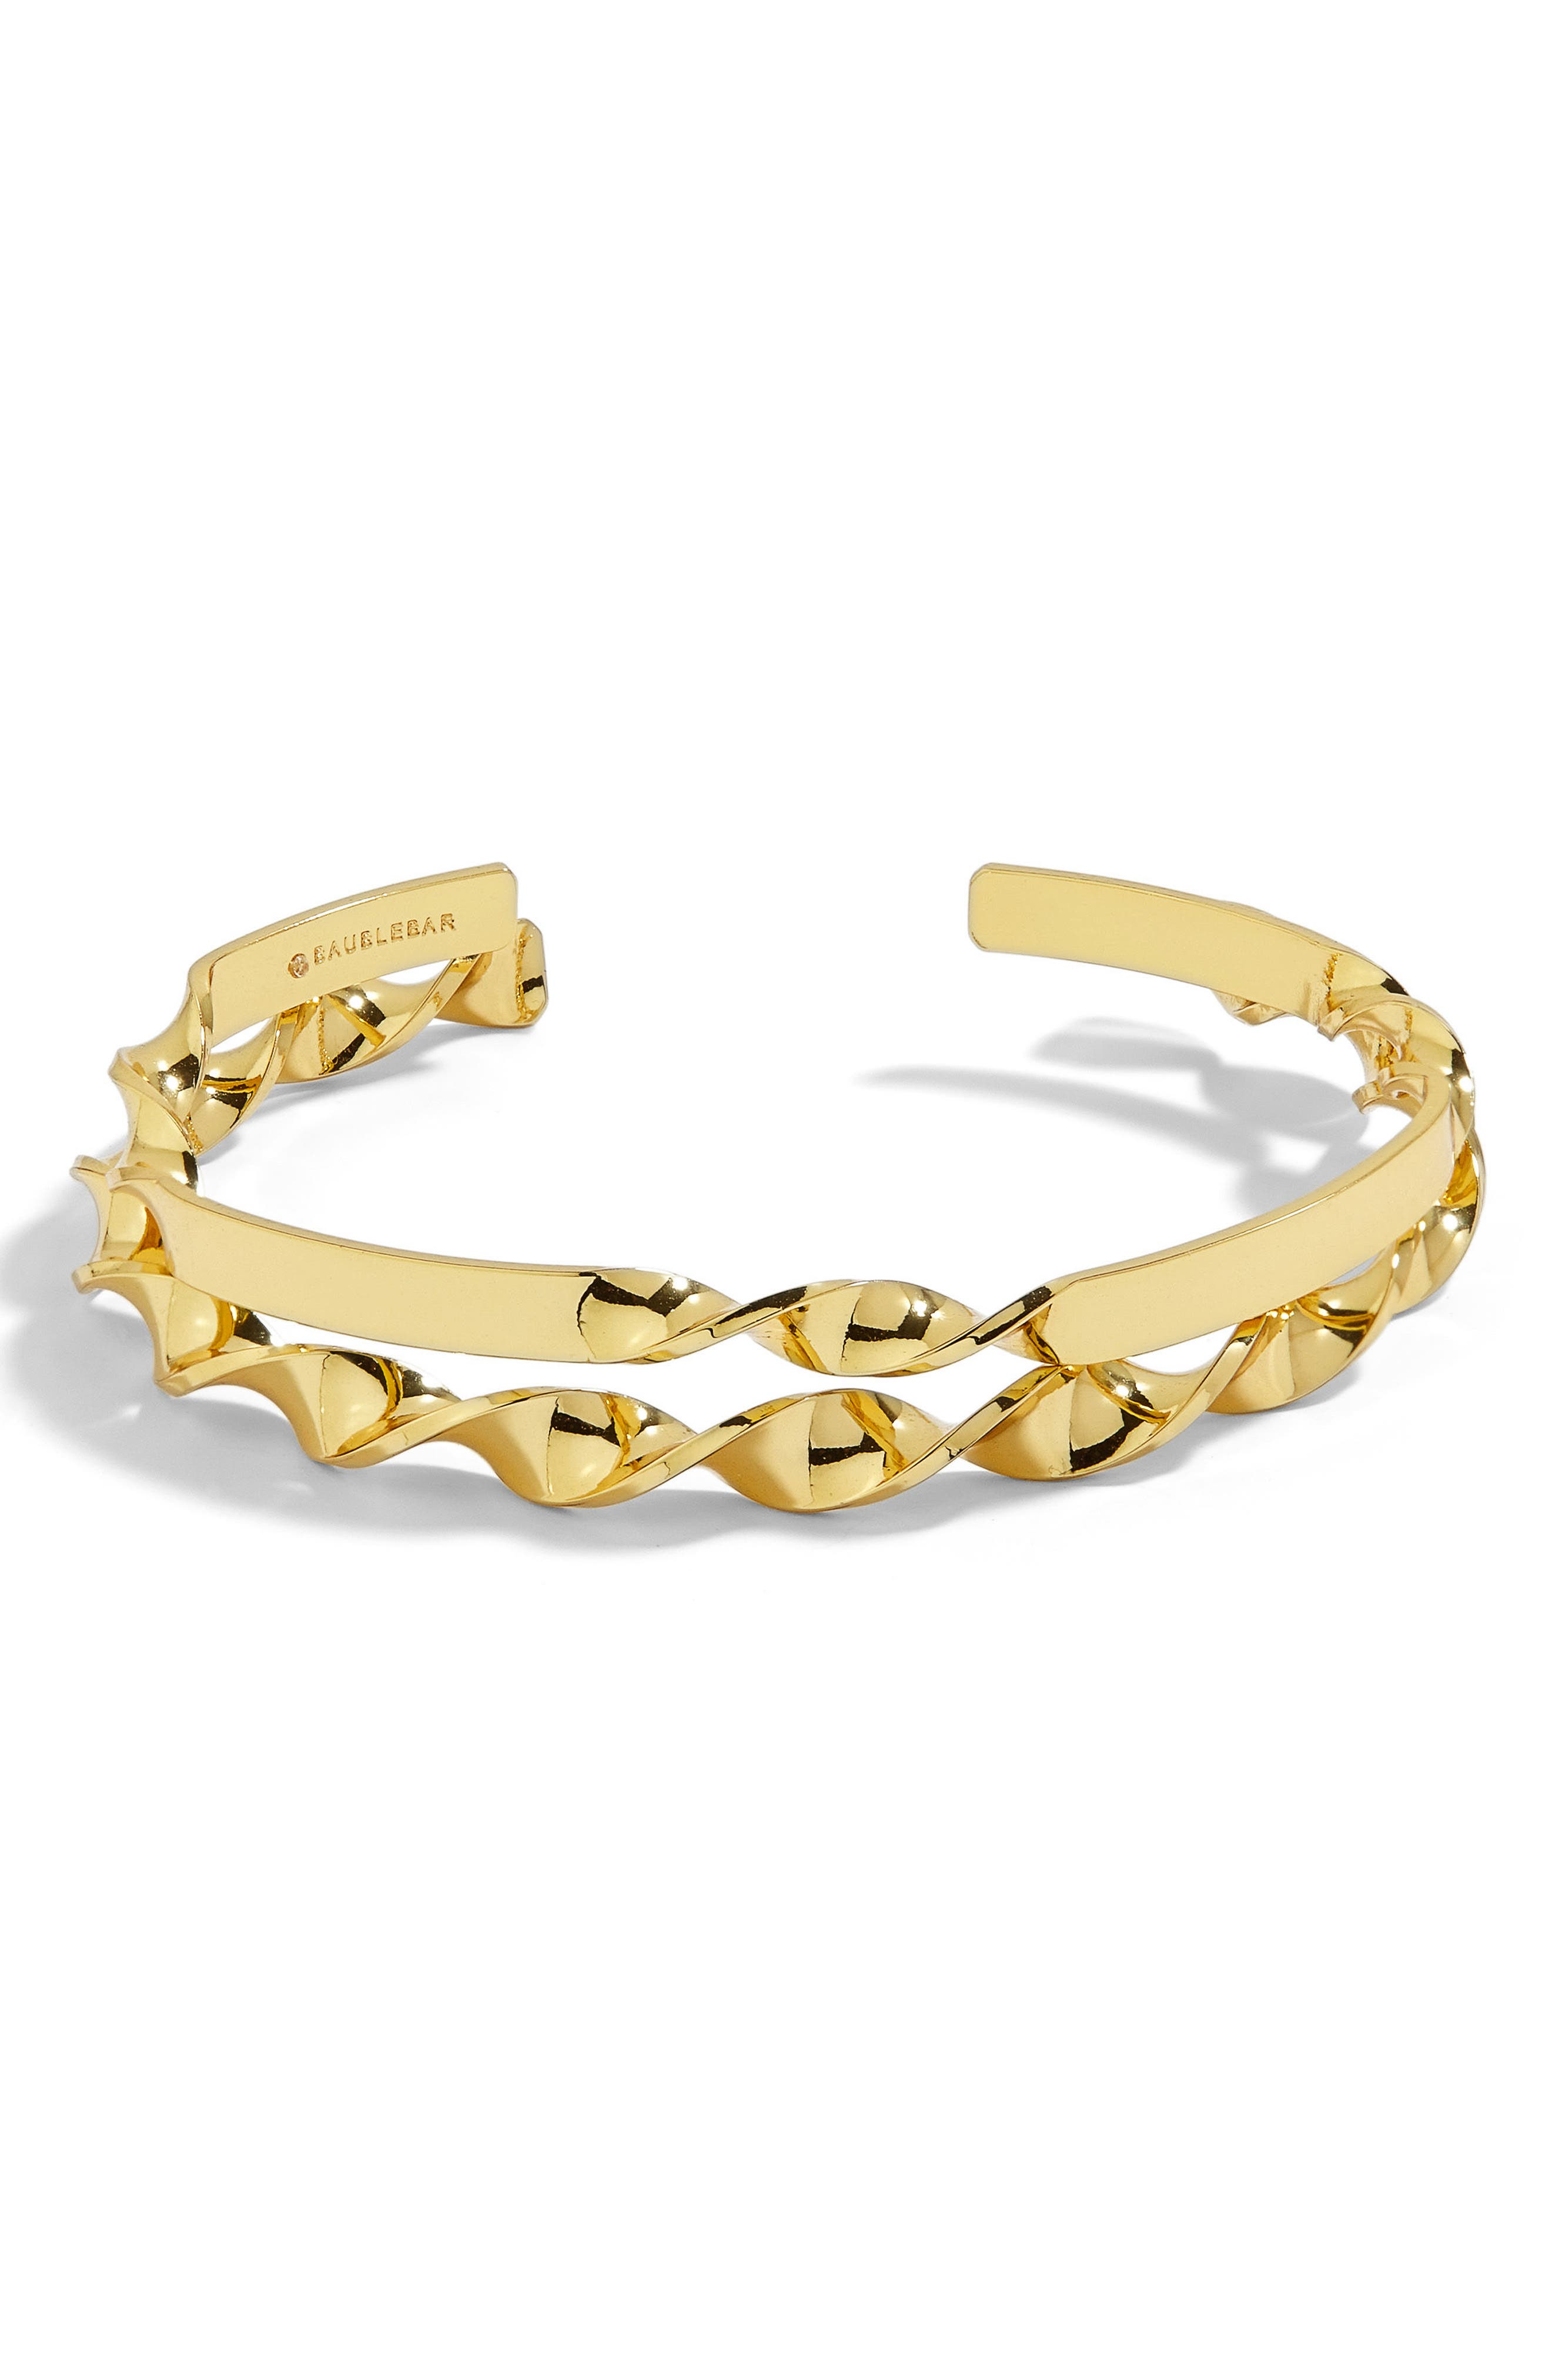 Narine Set of 2 Twisted Gold Cuff Bracelets,                         Main,                         color, 710